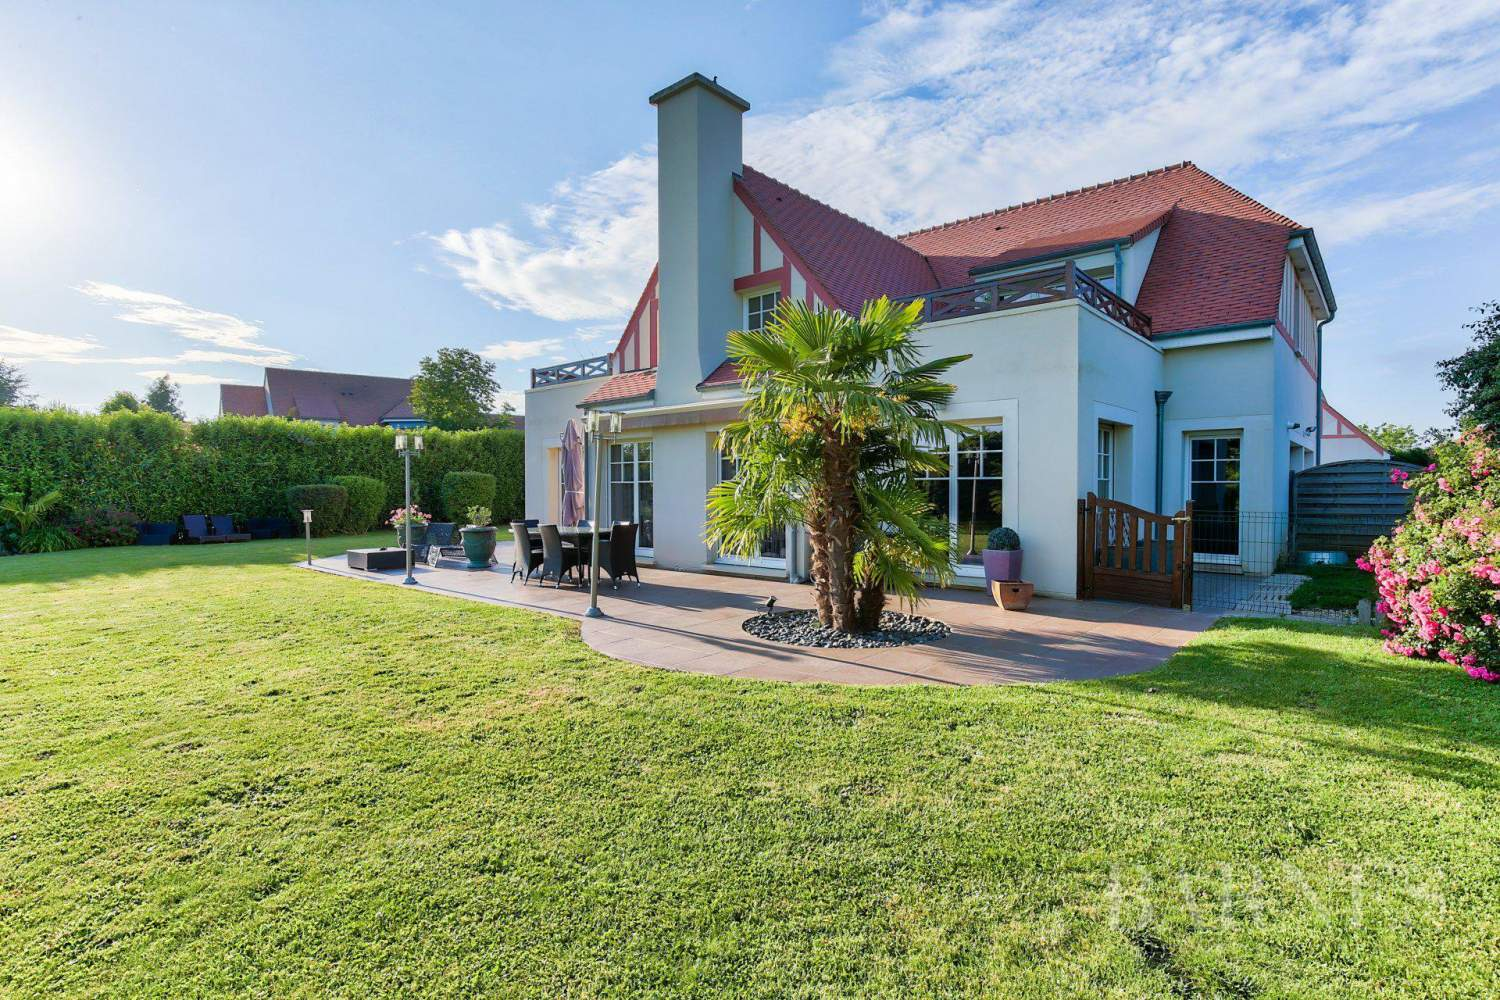 MAGNY-LE-HONGRE - PROPERTY WITH A VIEW OF A GOLF COURSE - 5 BEDROOMS - 1,000m² (10,764 sq ft) of land. picture 8